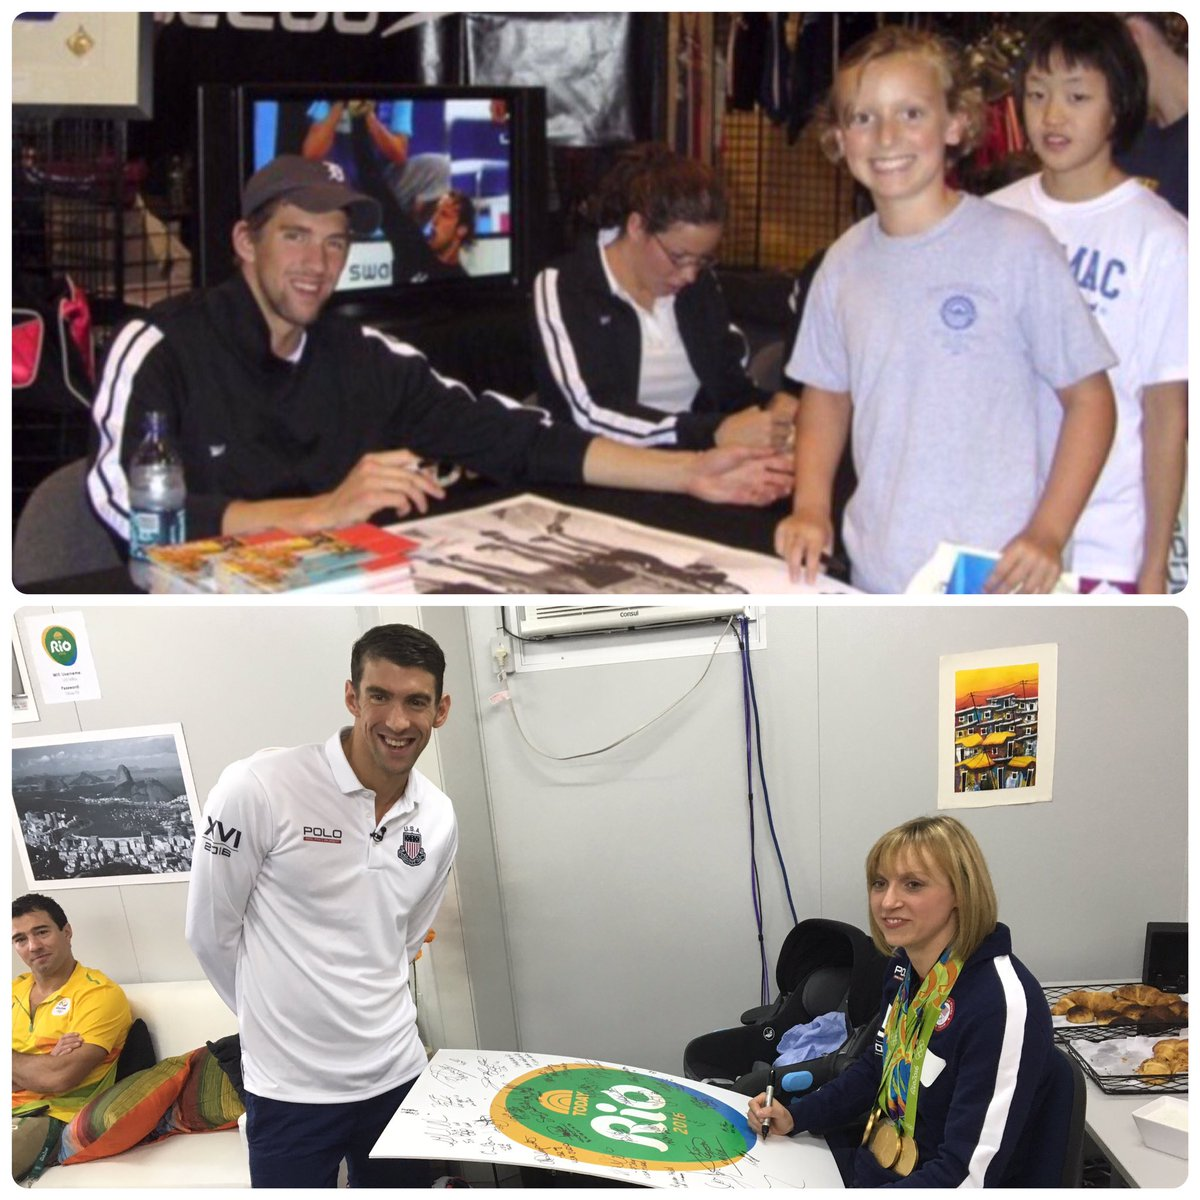 Vice-Versa: @katieledecky @MichaelPhelps re-create famous photo with opposite roles #riotoday #SwimUnited https://t.co/S06rkRkcTz